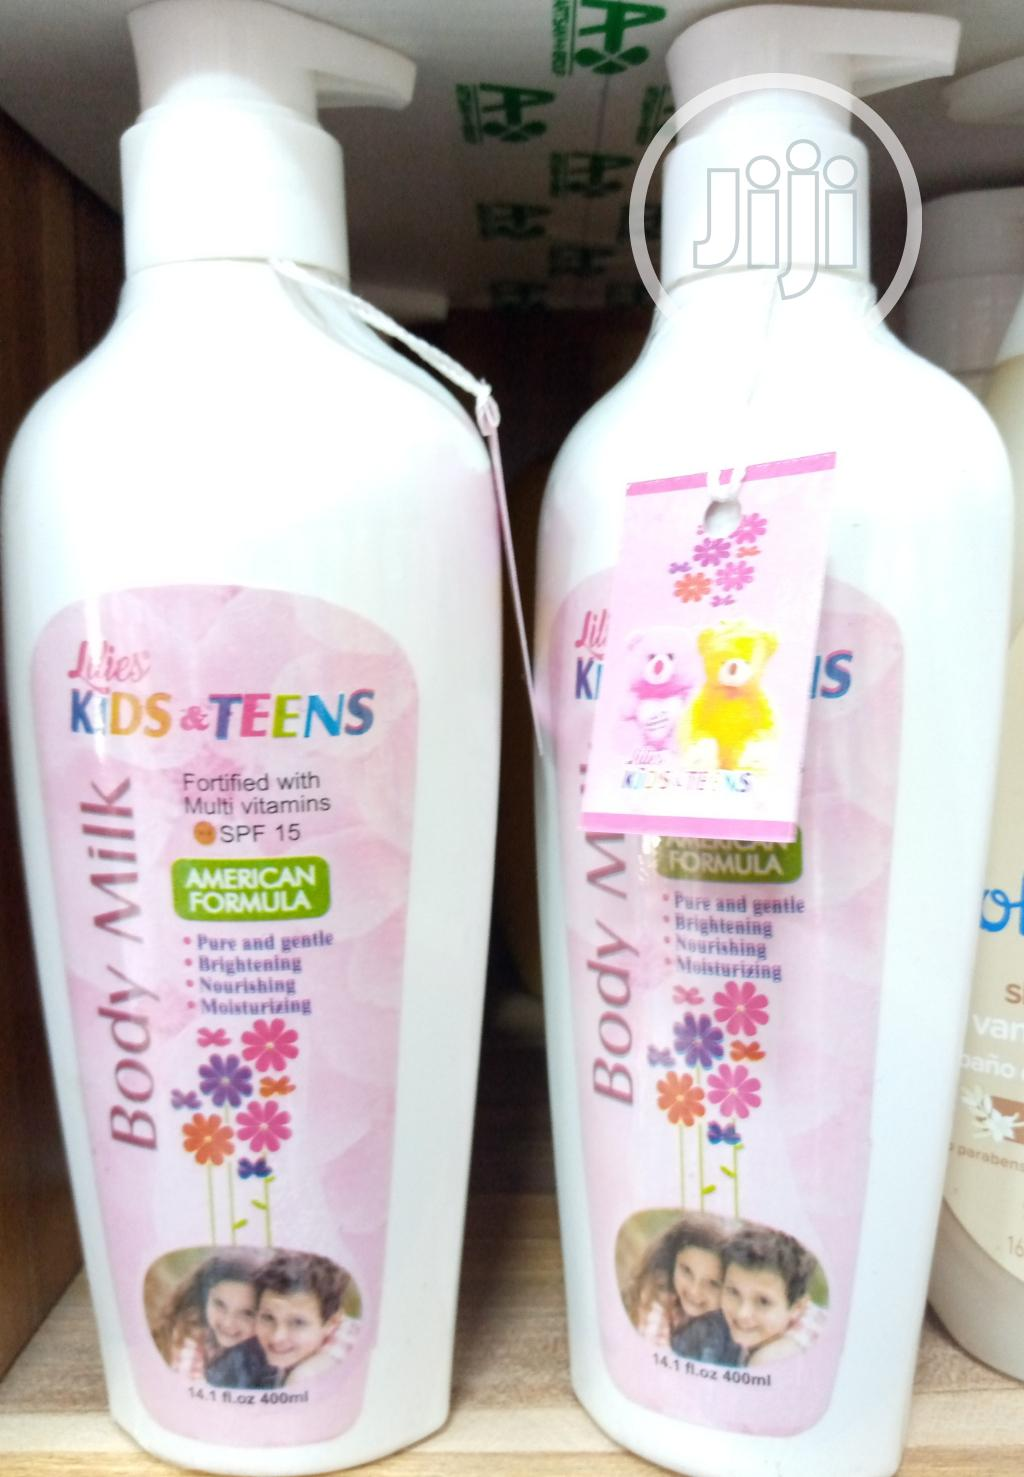 Lilies Kids And Teens Body Wash And Lotion (Made In Usa) | Baby & Child Care for sale in Ojo, Lagos State, Nigeria